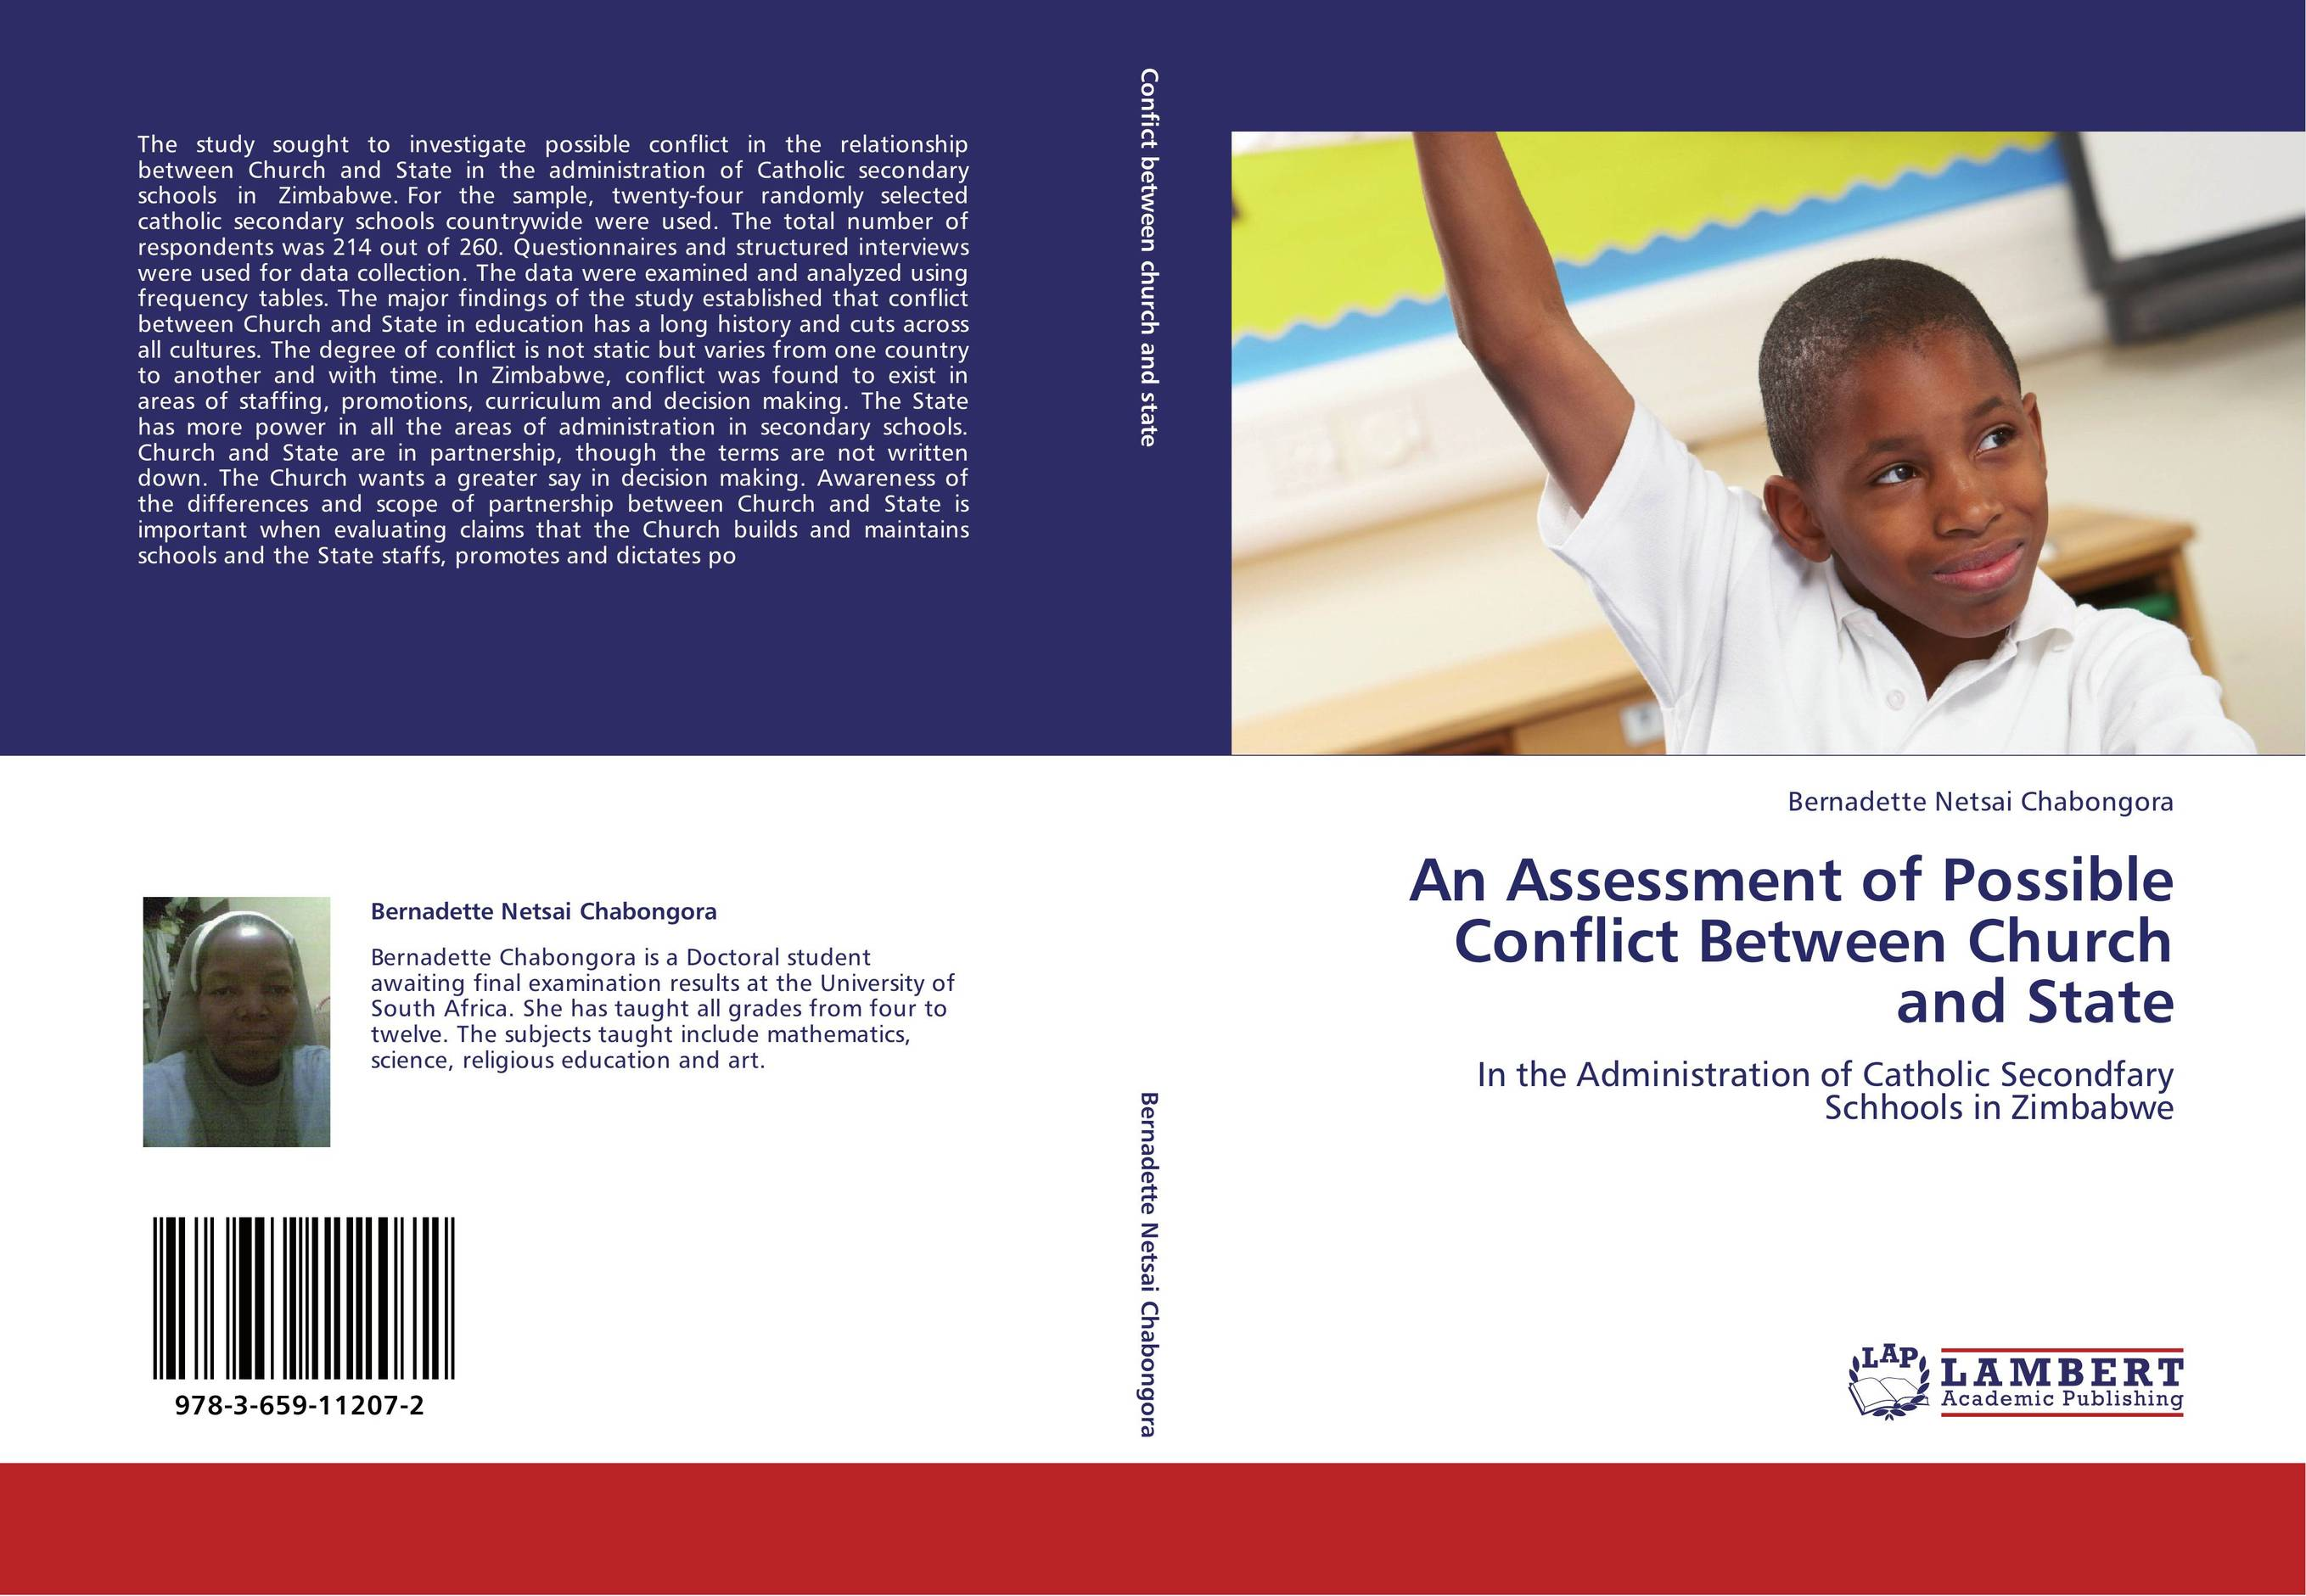 an essay on the conflict between the church and the state This analytical essay in politics discusses the ways israel-palestine conflict affect relationship between biggest players of the world the particular focus is made on the question why states like us, russia, eu etc support either side of the ongoing conflict the consequent influences on the political.